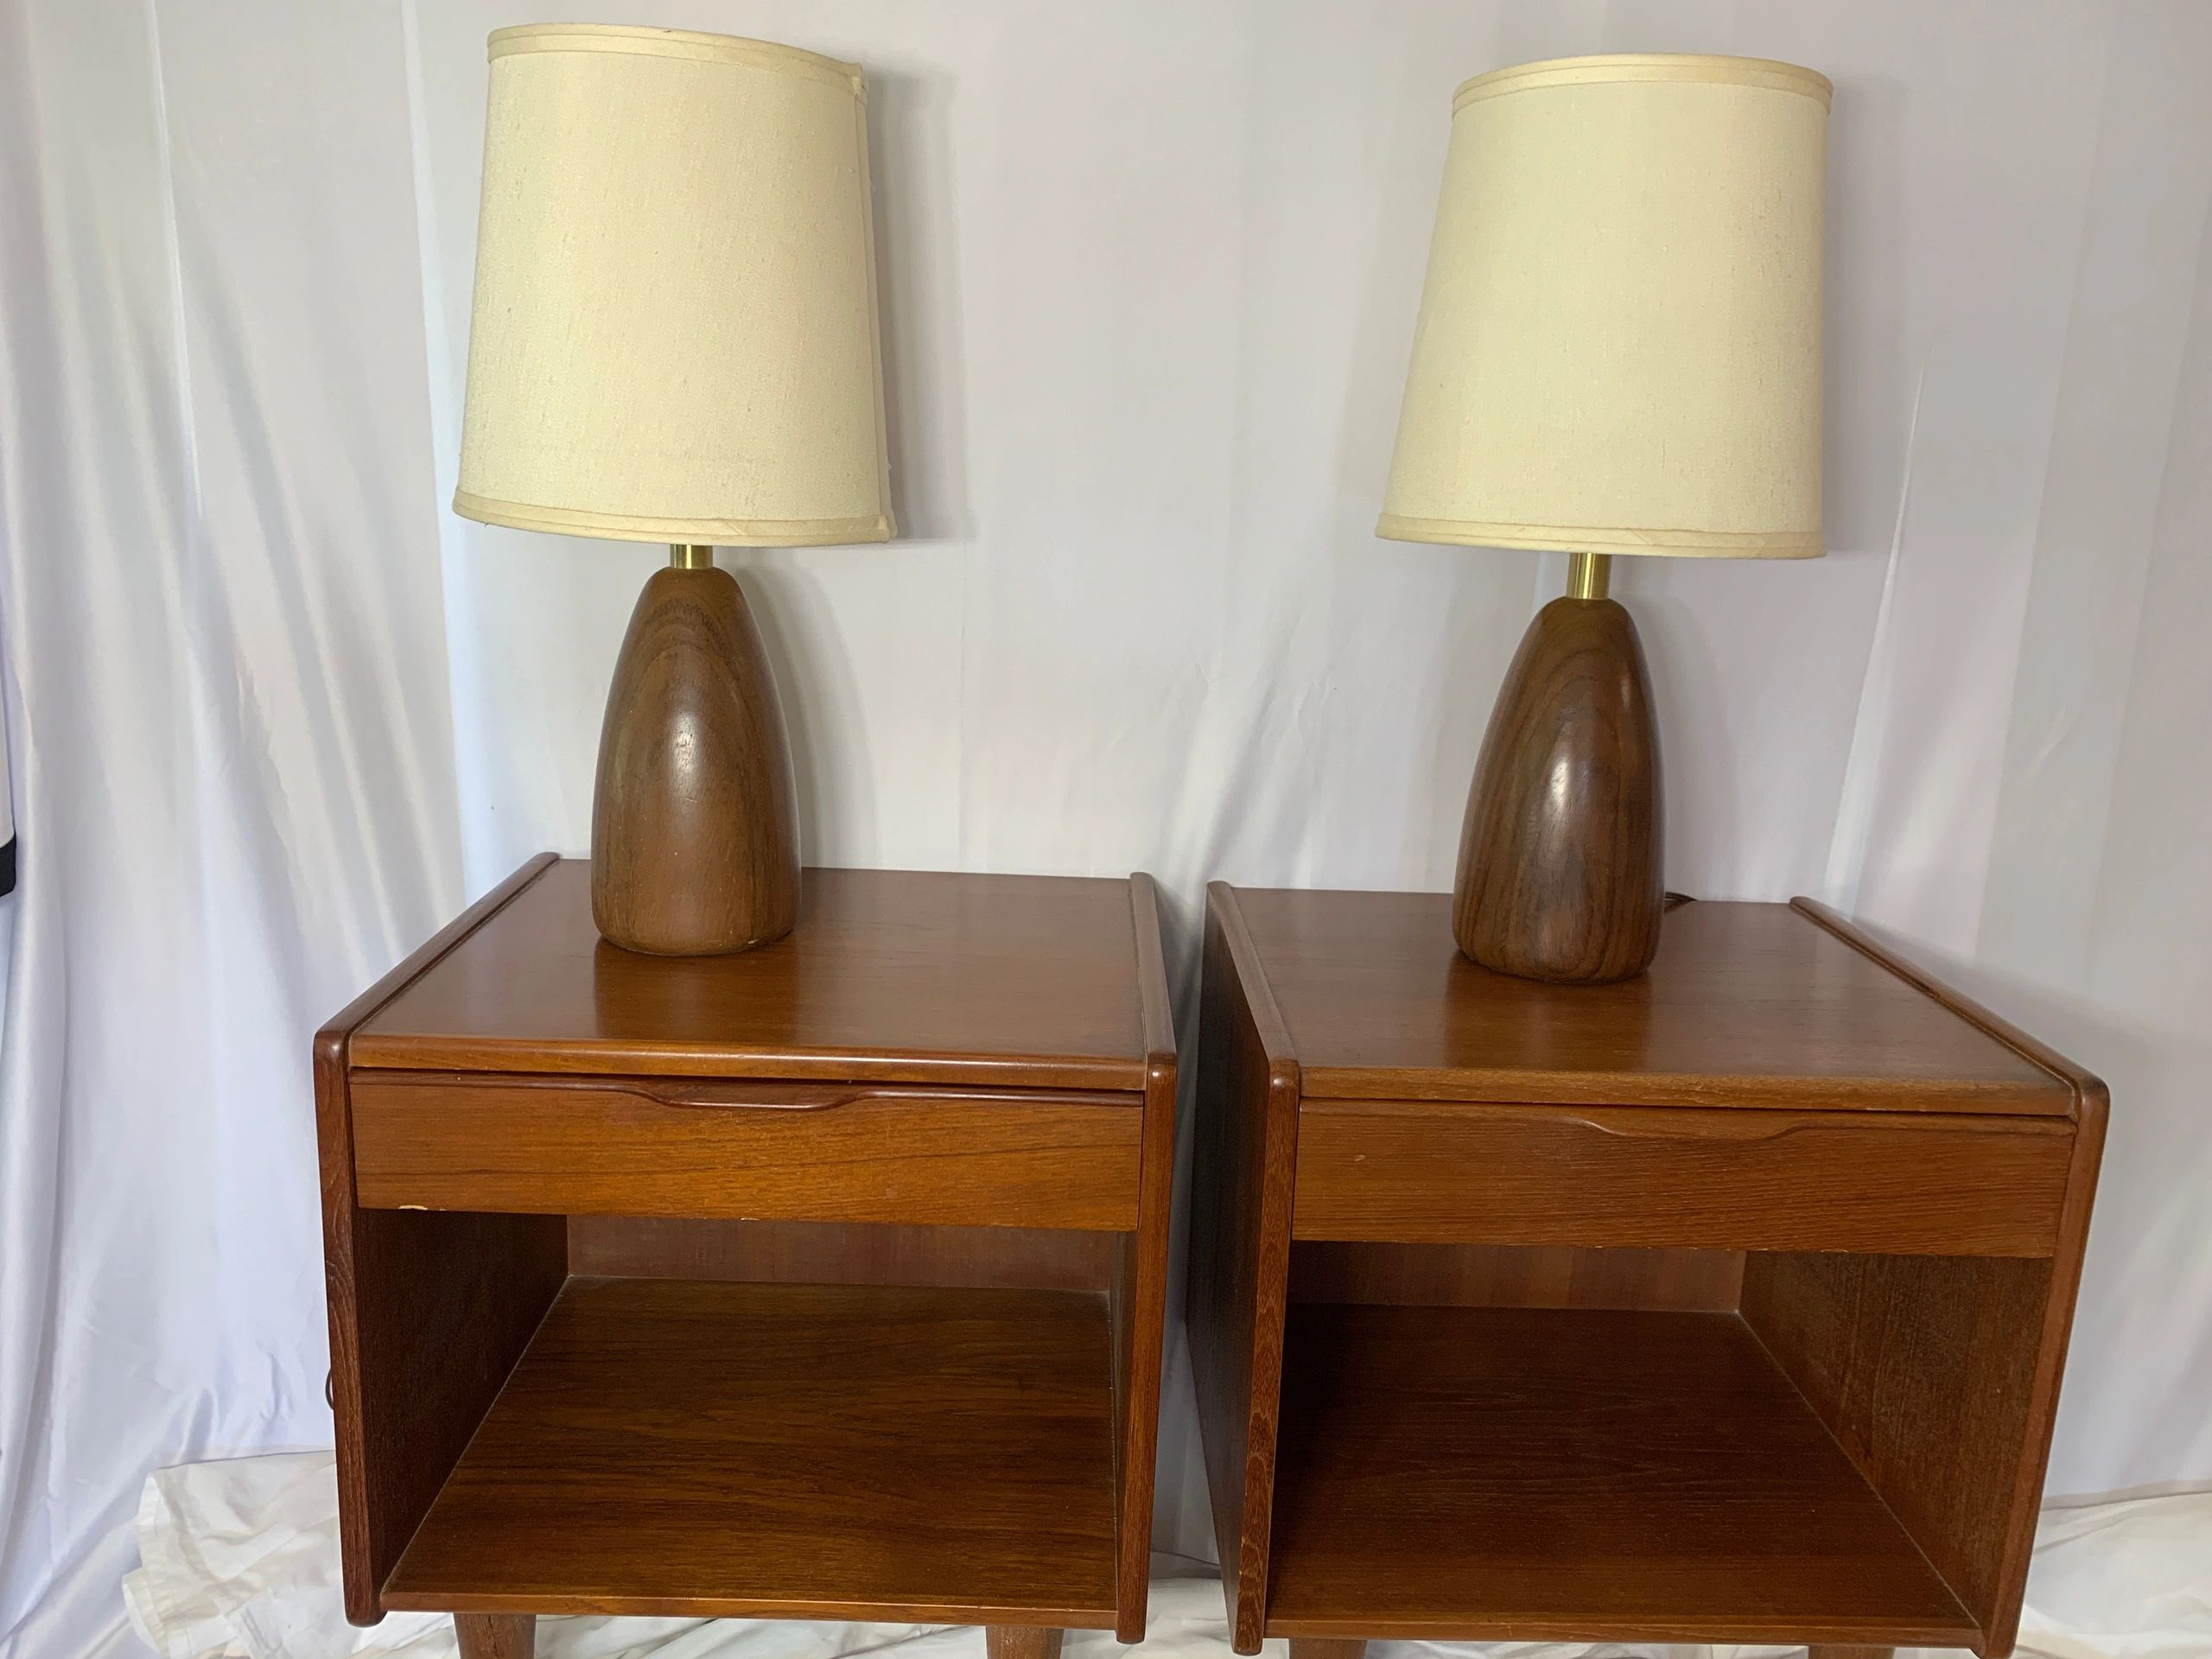 Mid-century modern Danish nightstands and lamps